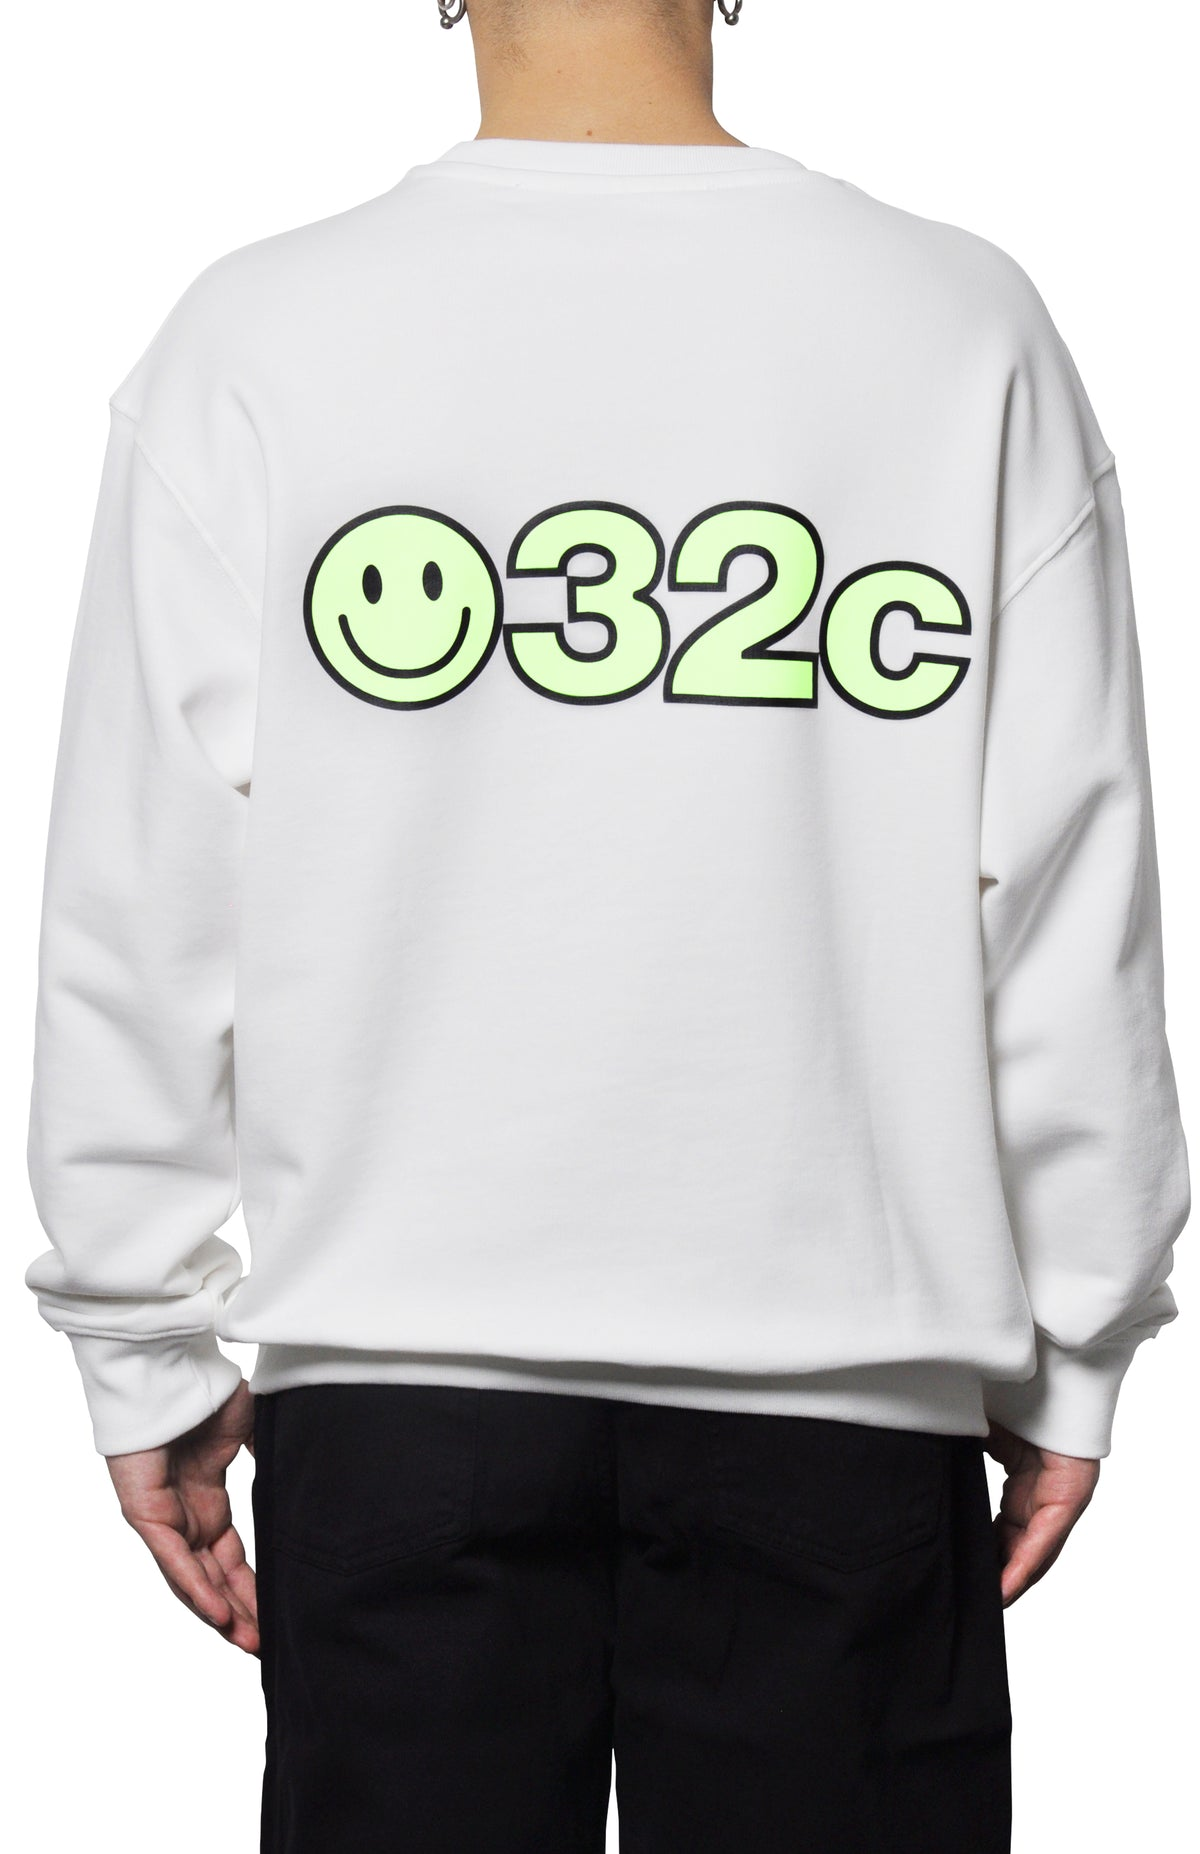 032c SMILEY Glow-in-the-dark Sweatshirt - 032c